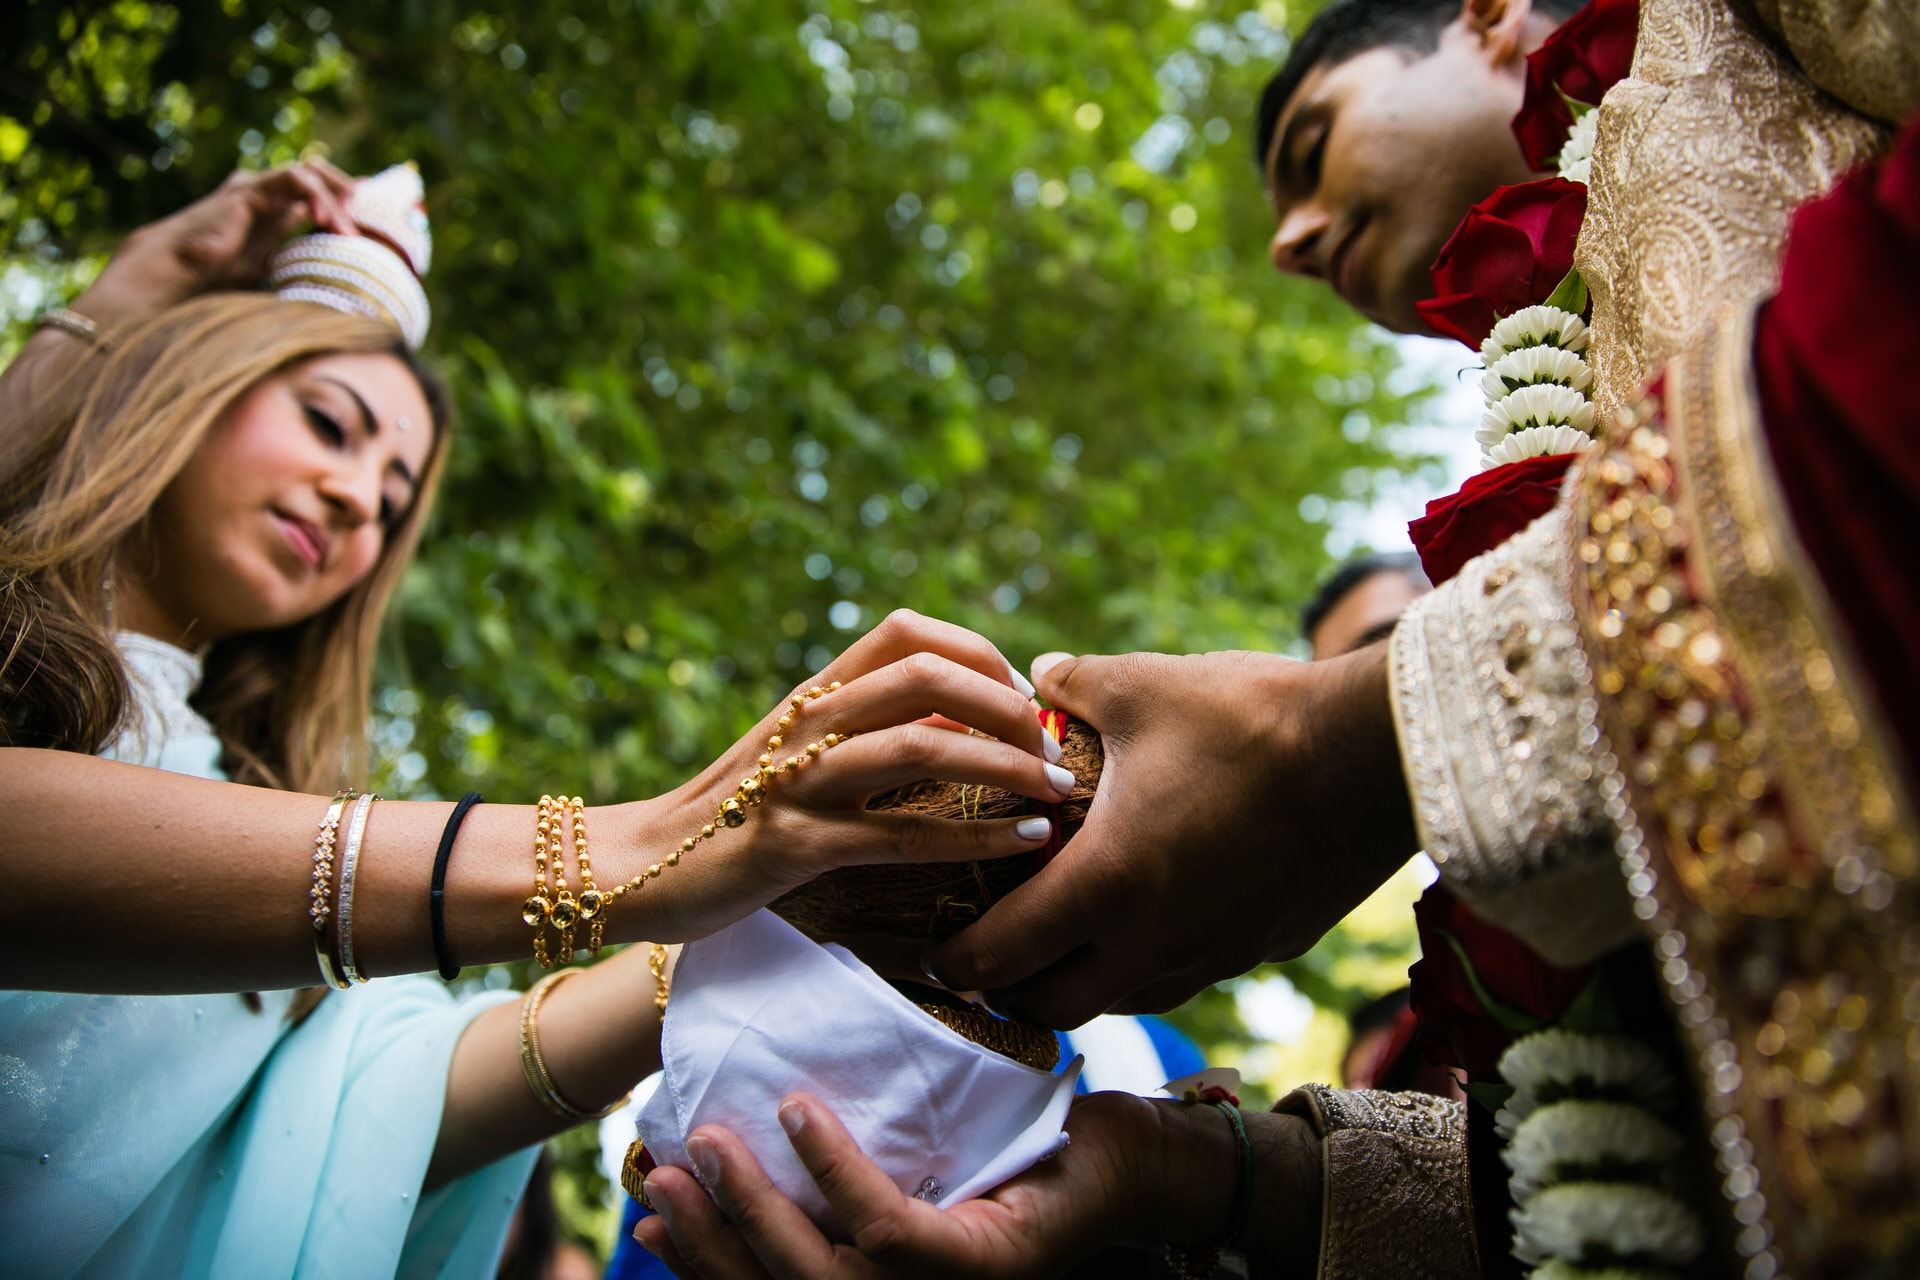 Coconut exchange ceremony during Hindu wedding